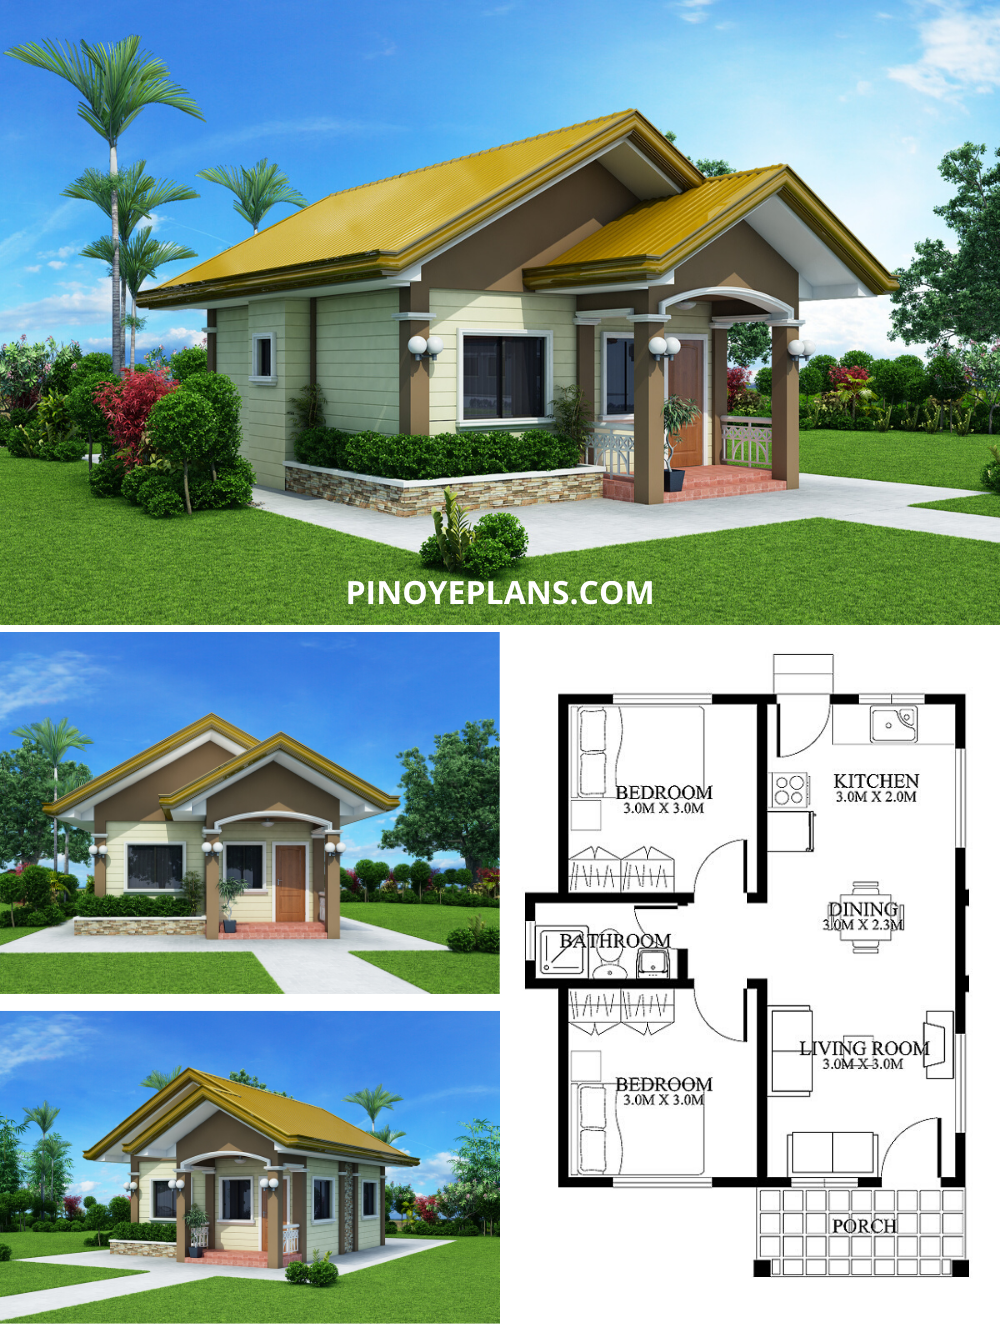 Small House Designs Shd 2012001 Pinoy Eplans Philippines House Design Small House Design Small House Model